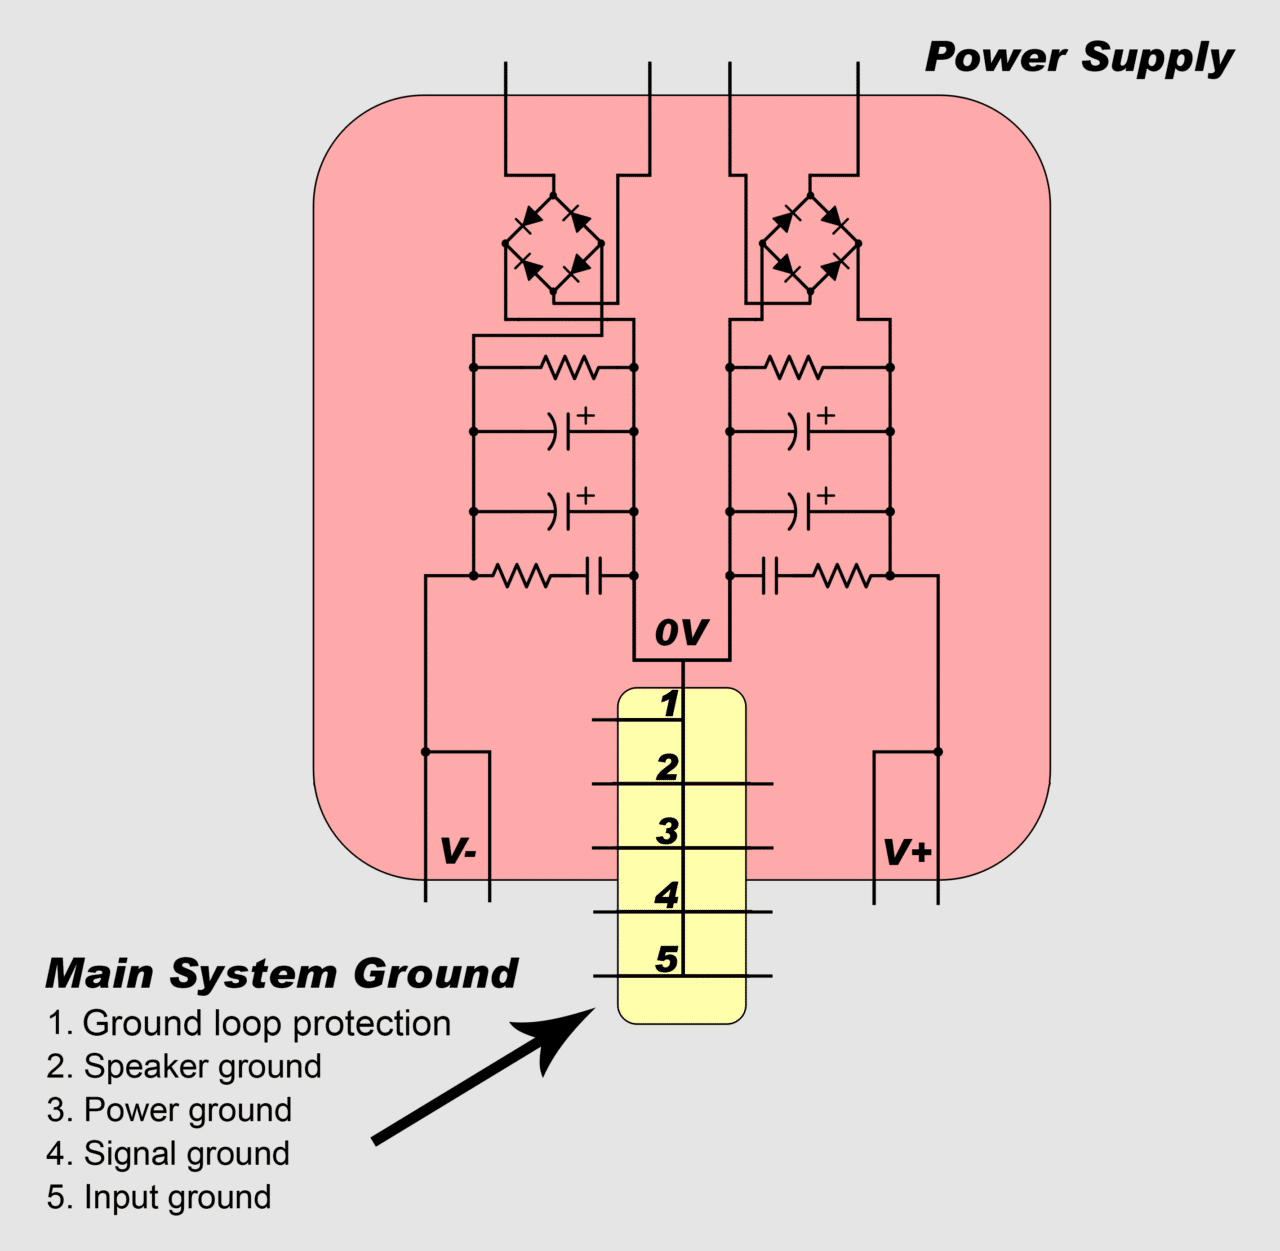 A Complete Guide To Design And Build Hi Fi Lm3886 Amplifier Filter Capacitor Circuit Out Ac Signals The Individual Ground Networks Are Connected Main System So That Higher Current Grounds Closer Reservoir Capacitors